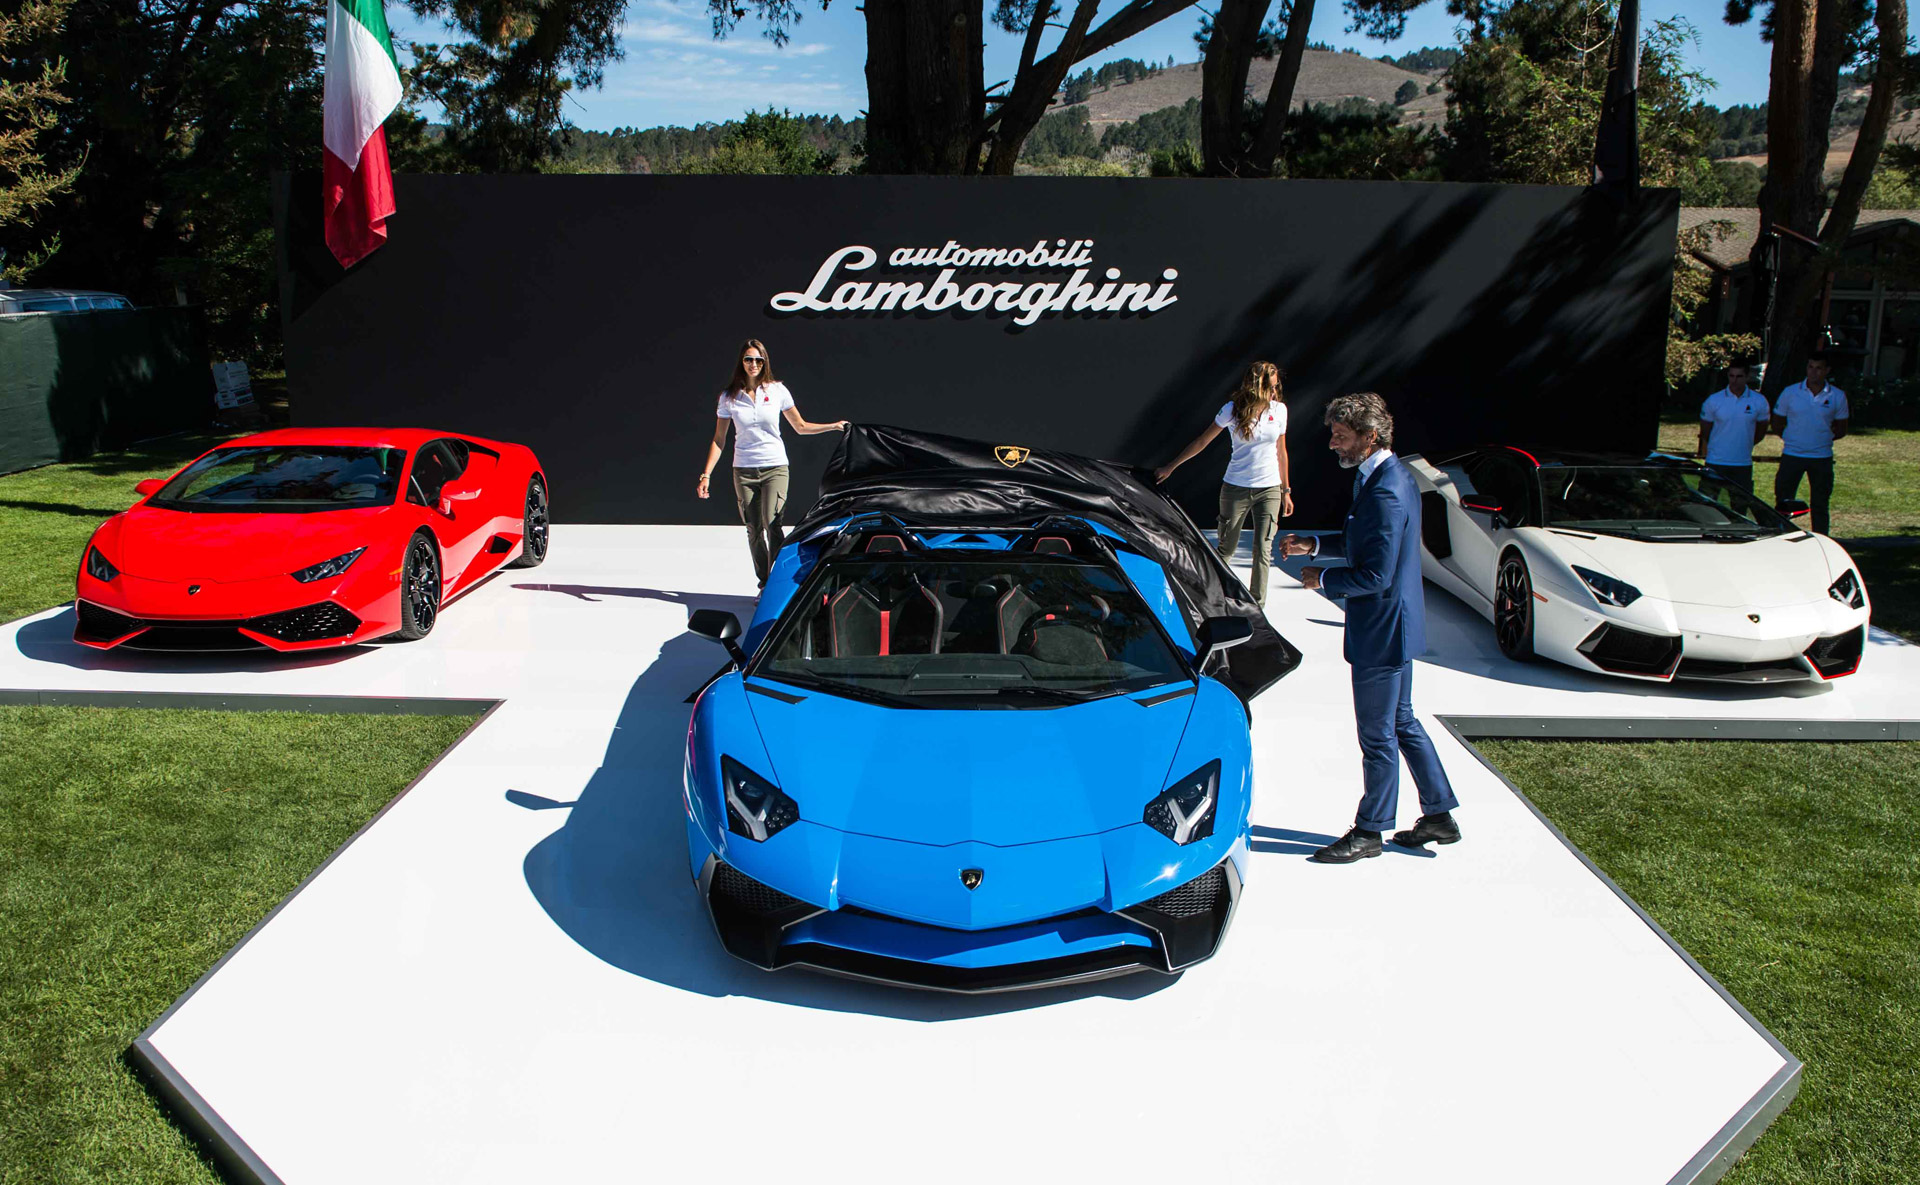 Lamborghini Aventador Lp 750 4 Superveloce Roadster Revealed In Monterey